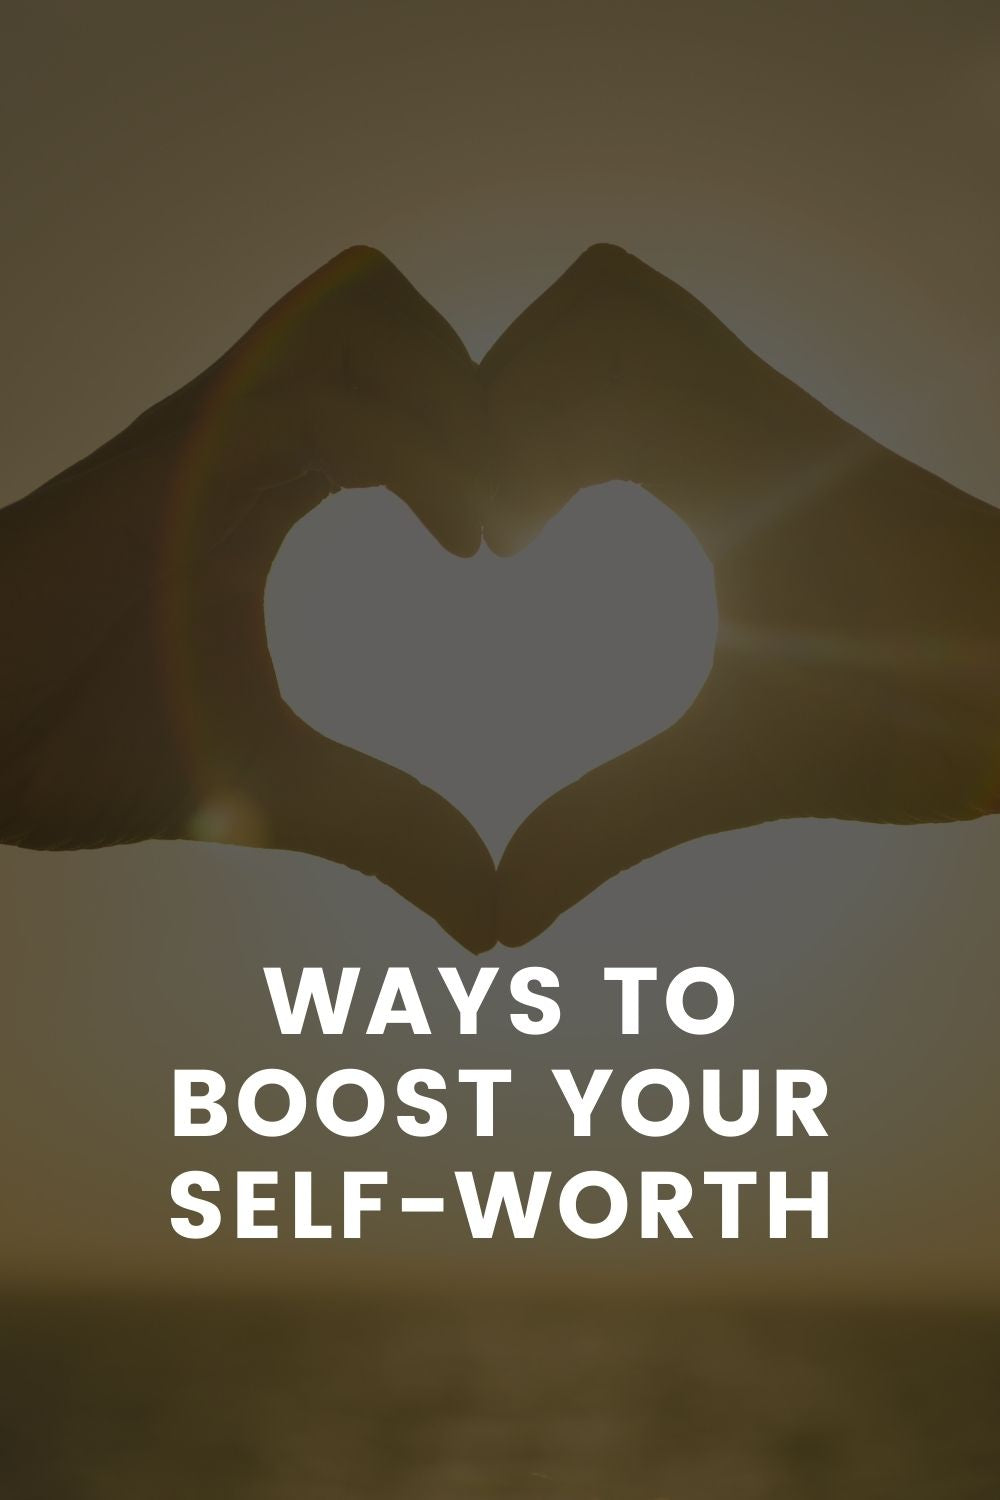 Ways To Boost Your Self-worth